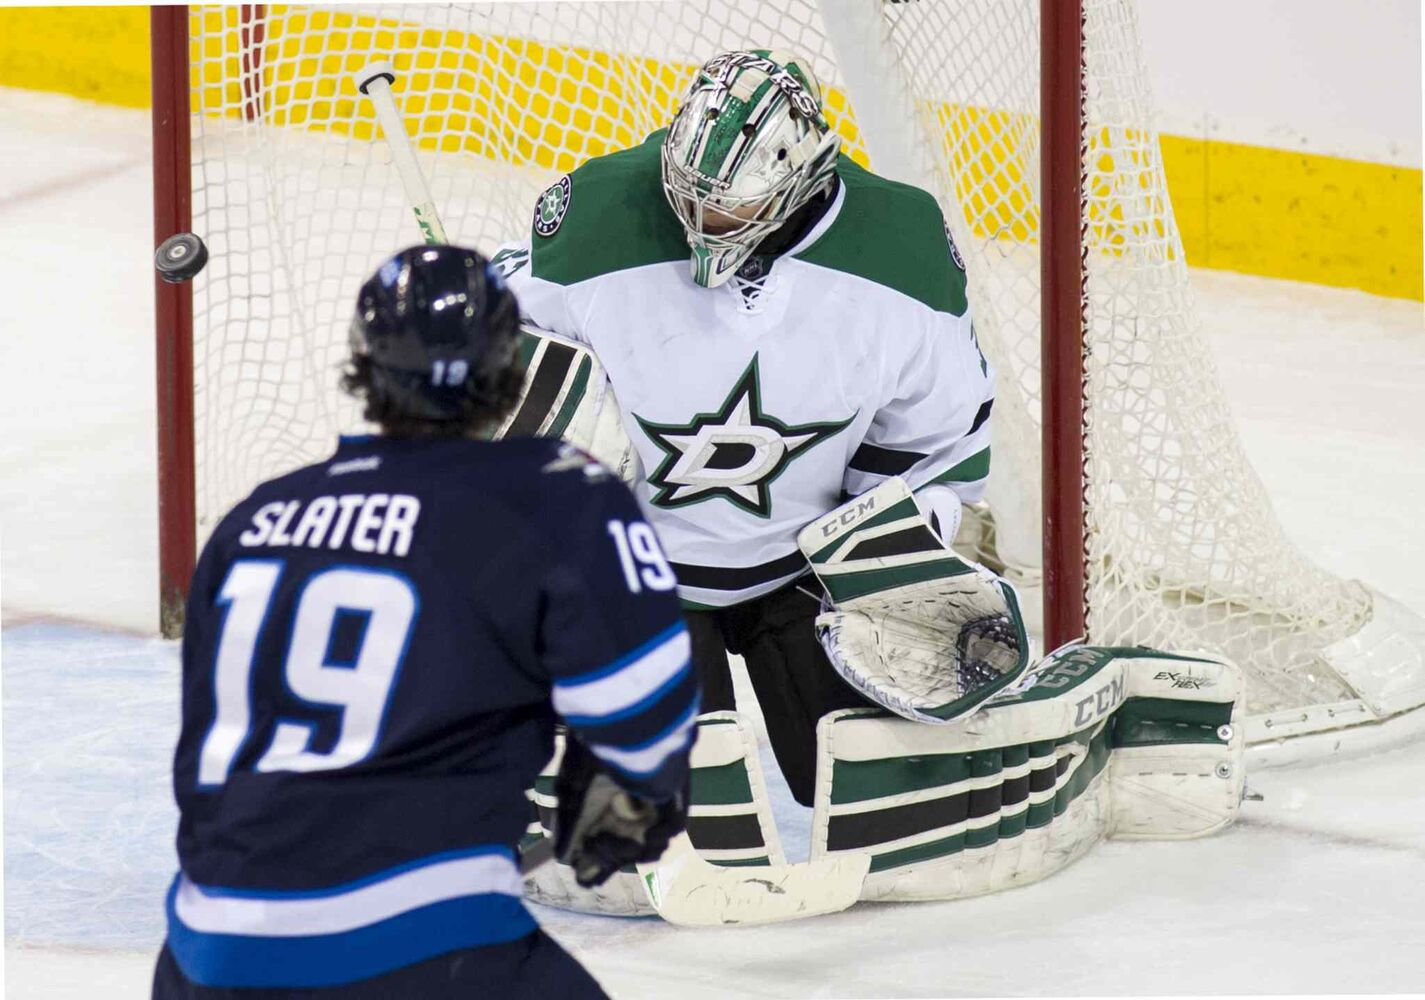 Dallas Stars goaltender Kari Lehtonen (#32) blocks a first-period shot from Winnipeg Jets Jim Slater (#19). (DAVID LIPNOWSKI / WINNIPEG FREE PRESS)